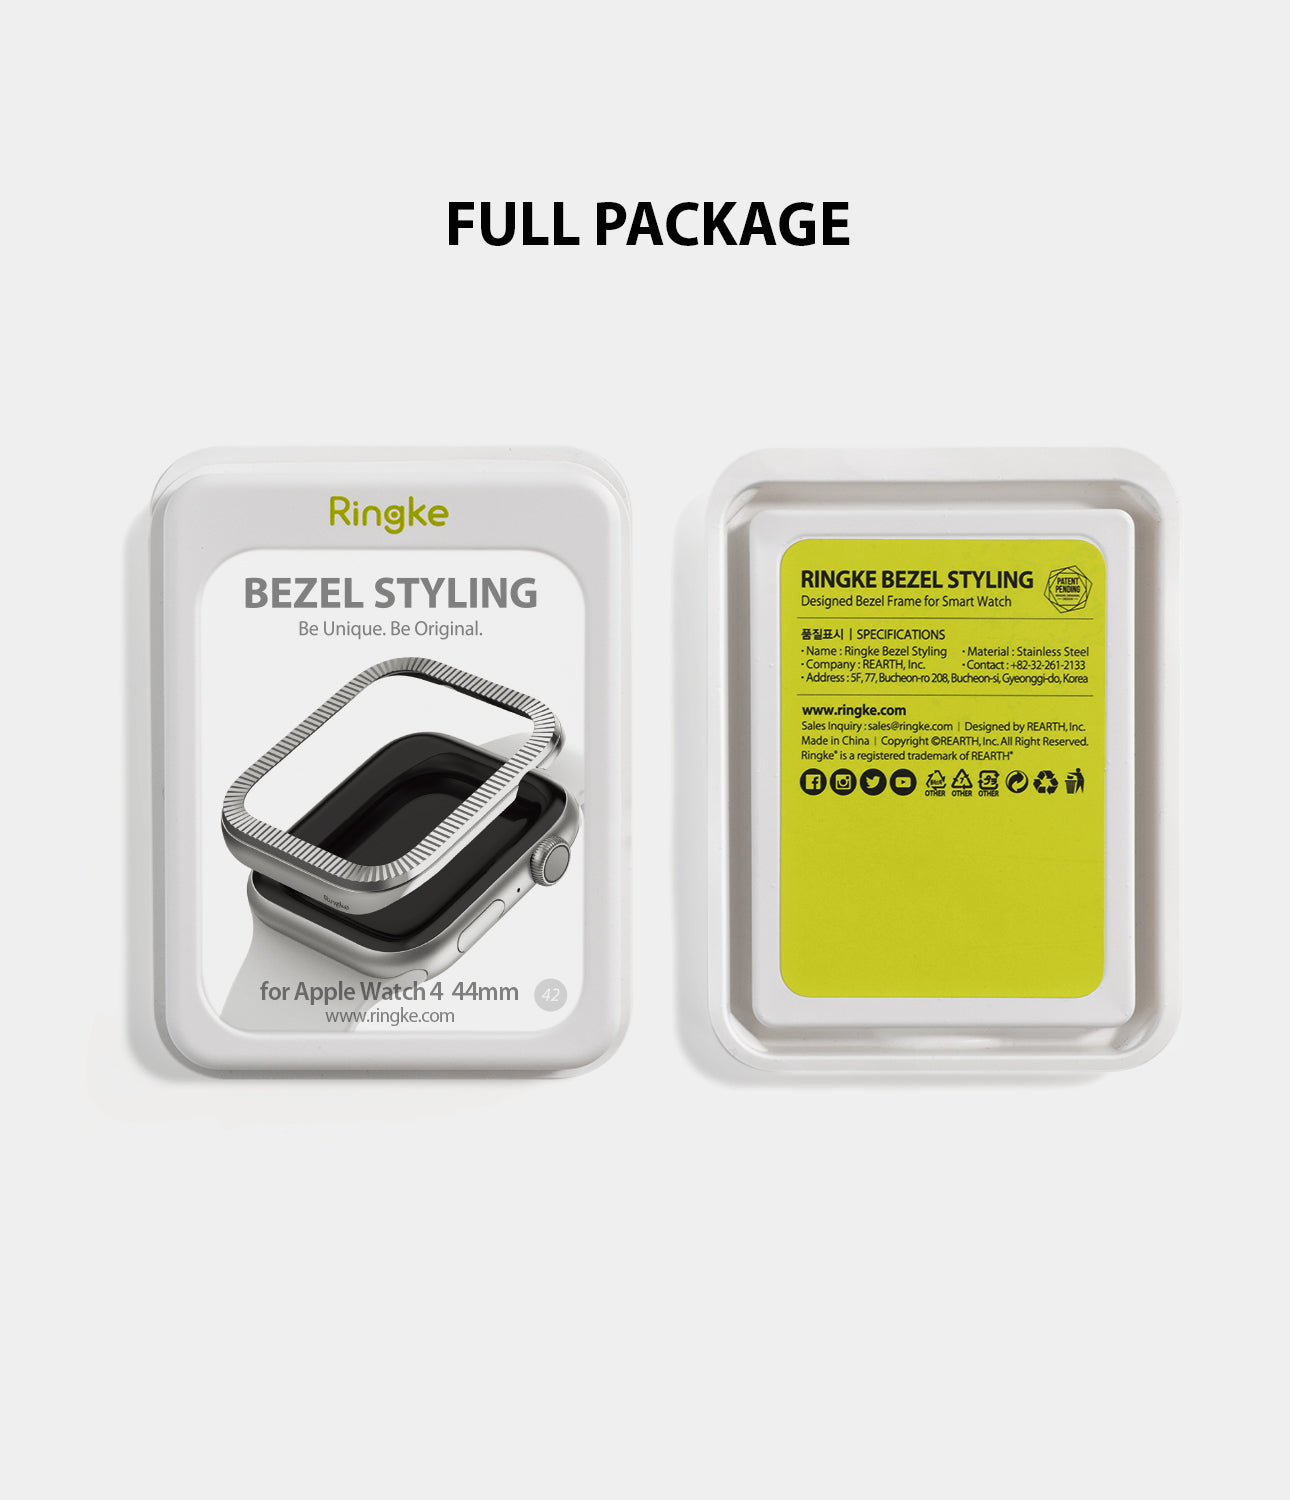 apple watch 4 44mm case ringke bezel styling stainless steel frame cover 44-42 full package